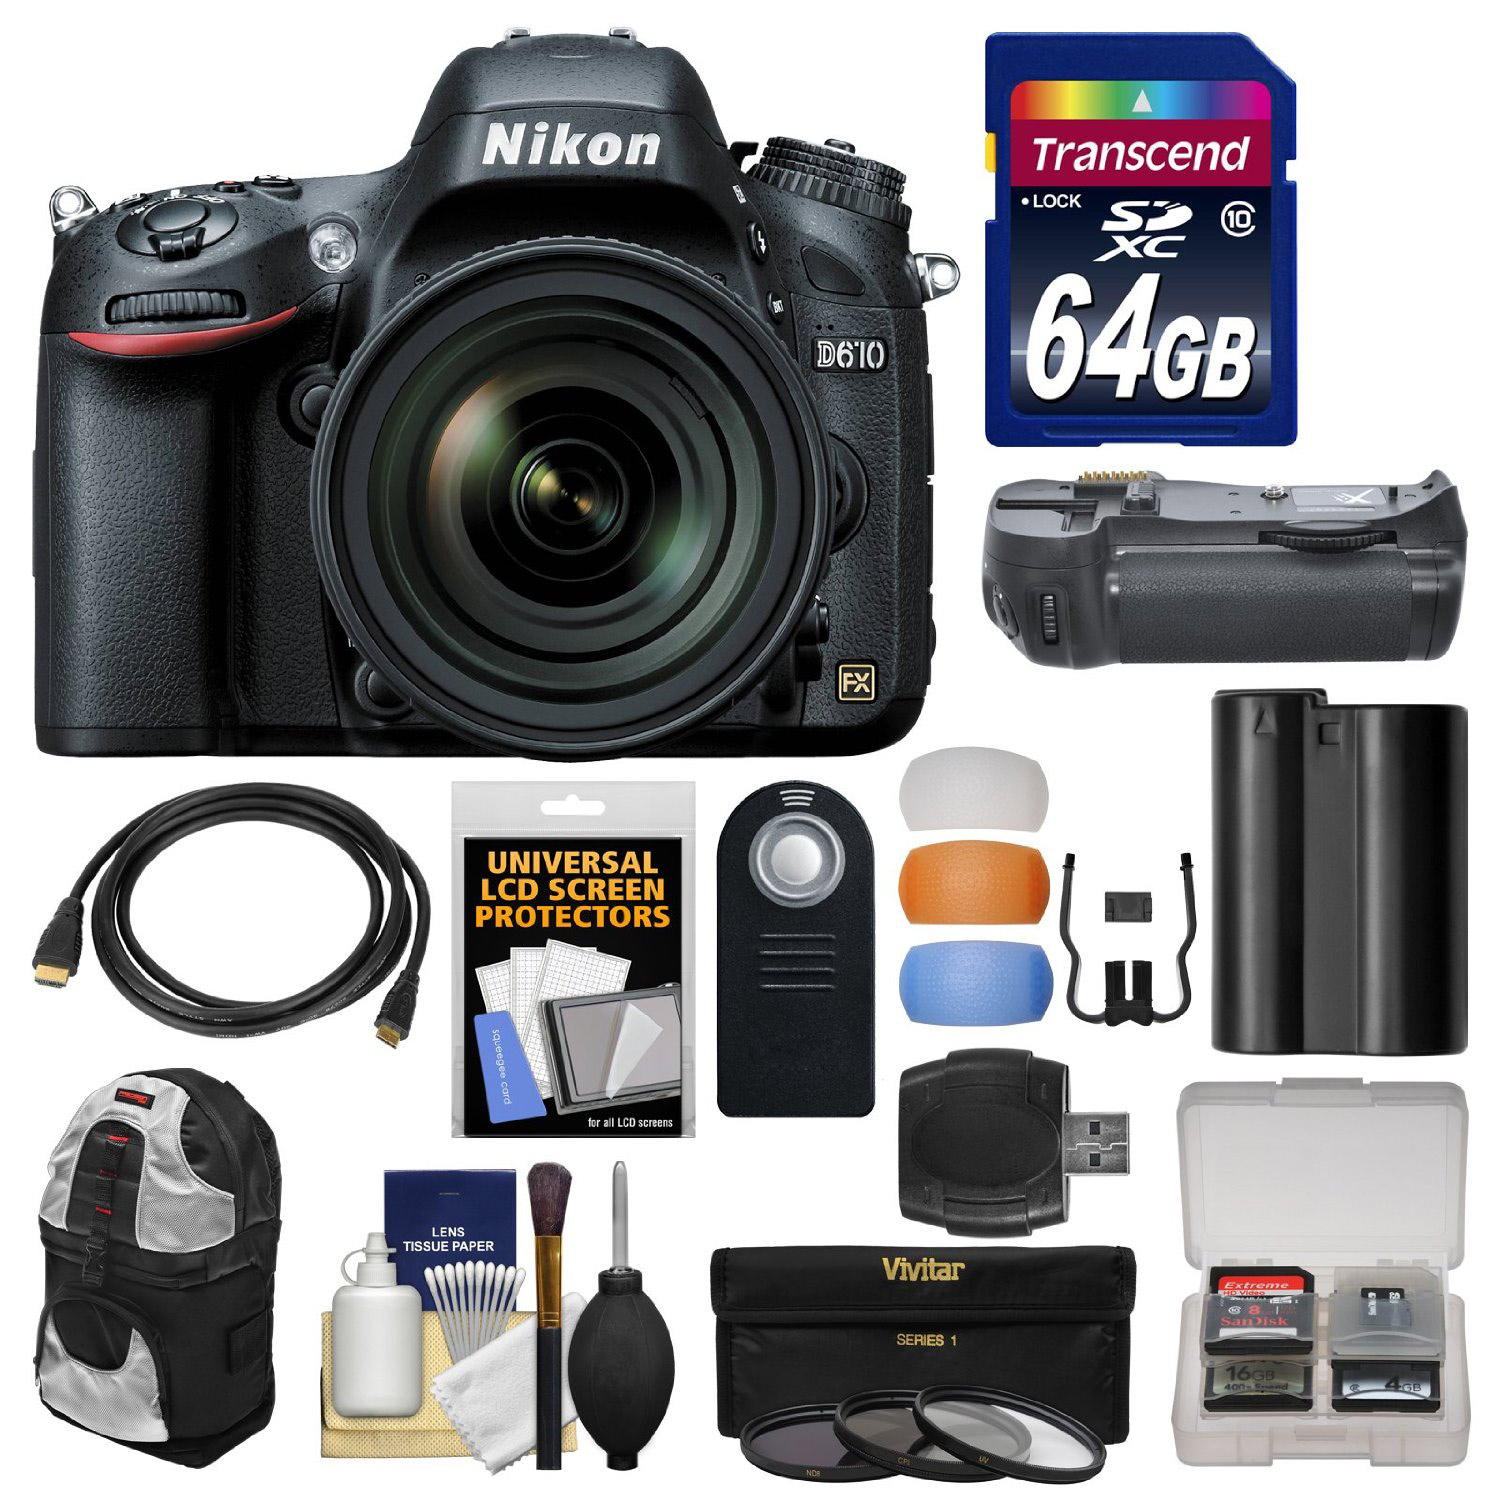 The Best Nikon D610 Bundle Deal Spudart Cleaning Kit 7 In 1 Calculated Value Of Freebies 16058